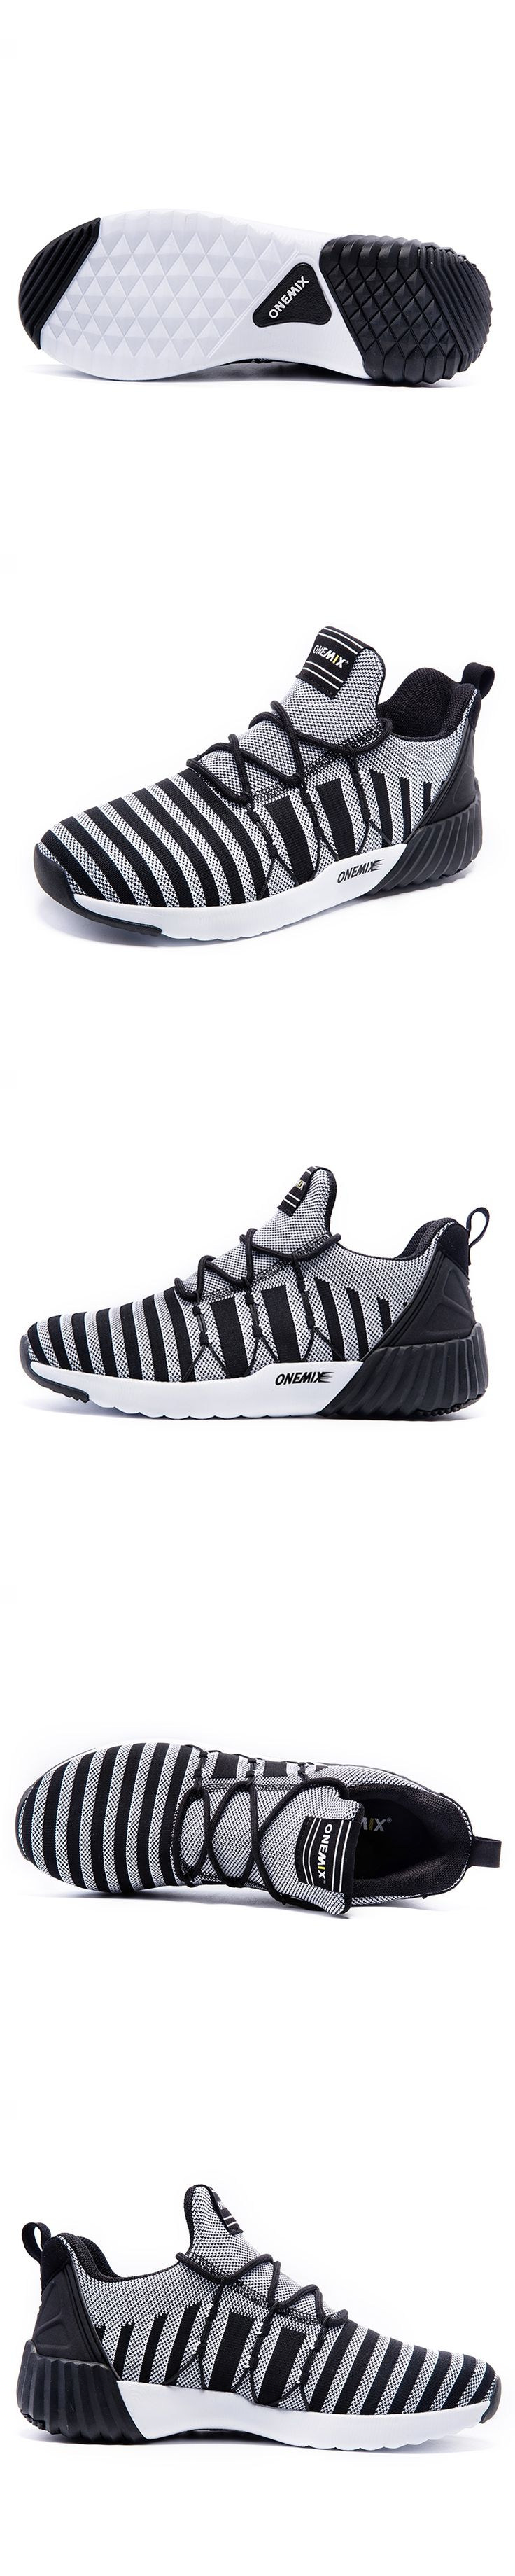 2017 Men's Running Shoes Warm Winter Sport Sneakers Thicken Trainer Shoes Mesh Breathable Men Jogging Shoes 1198